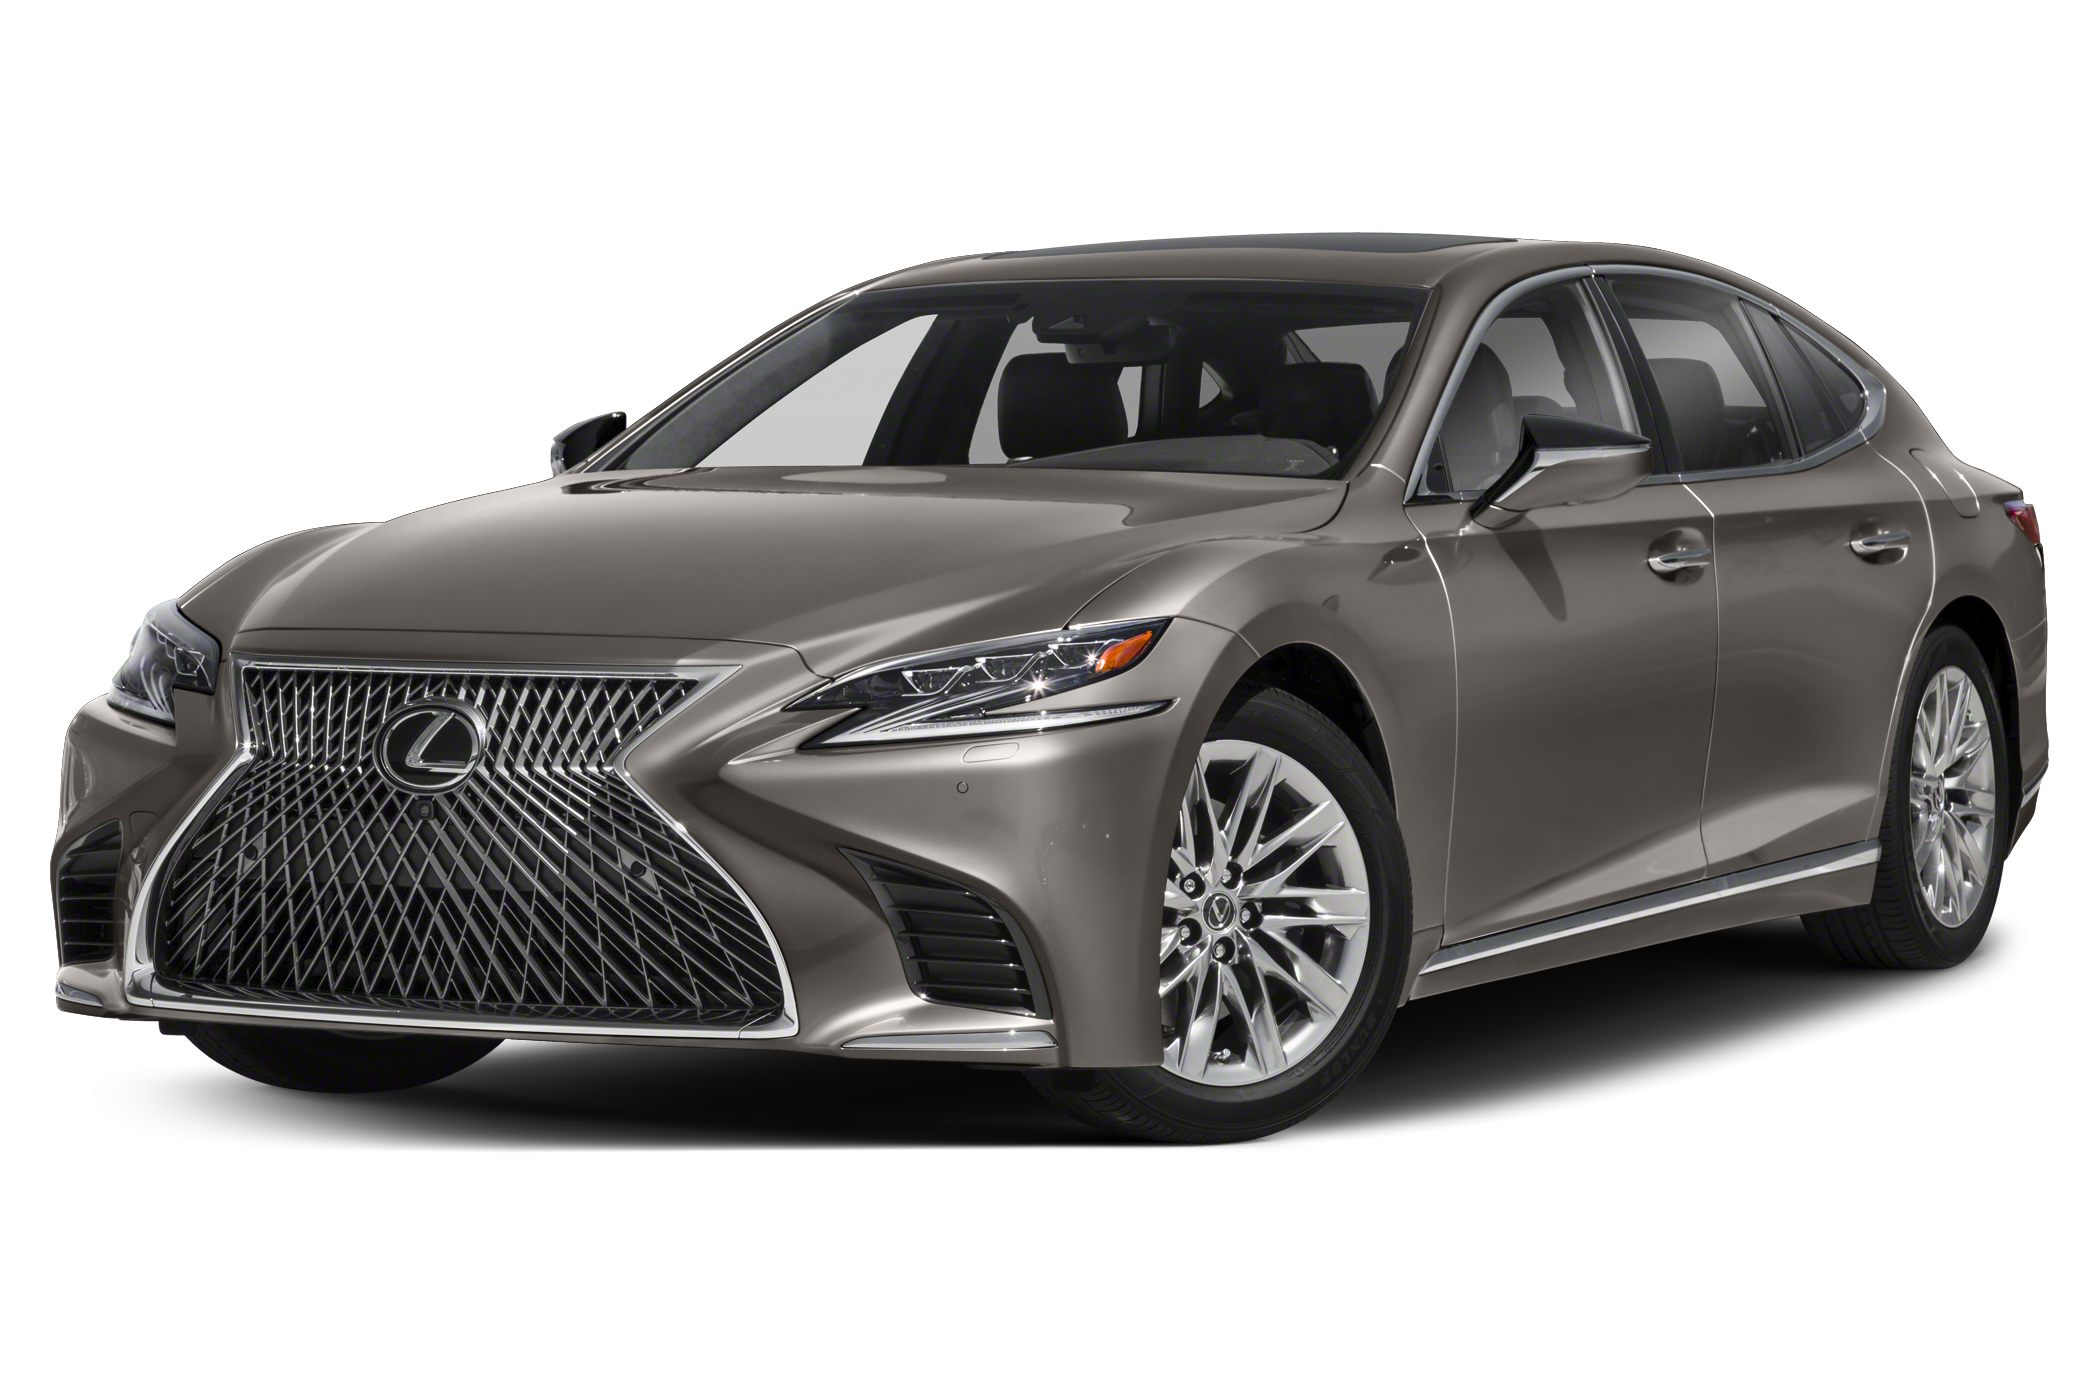 2018 lexus ls 500 f sport luxury sedan review autoblog. Black Bedroom Furniture Sets. Home Design Ideas